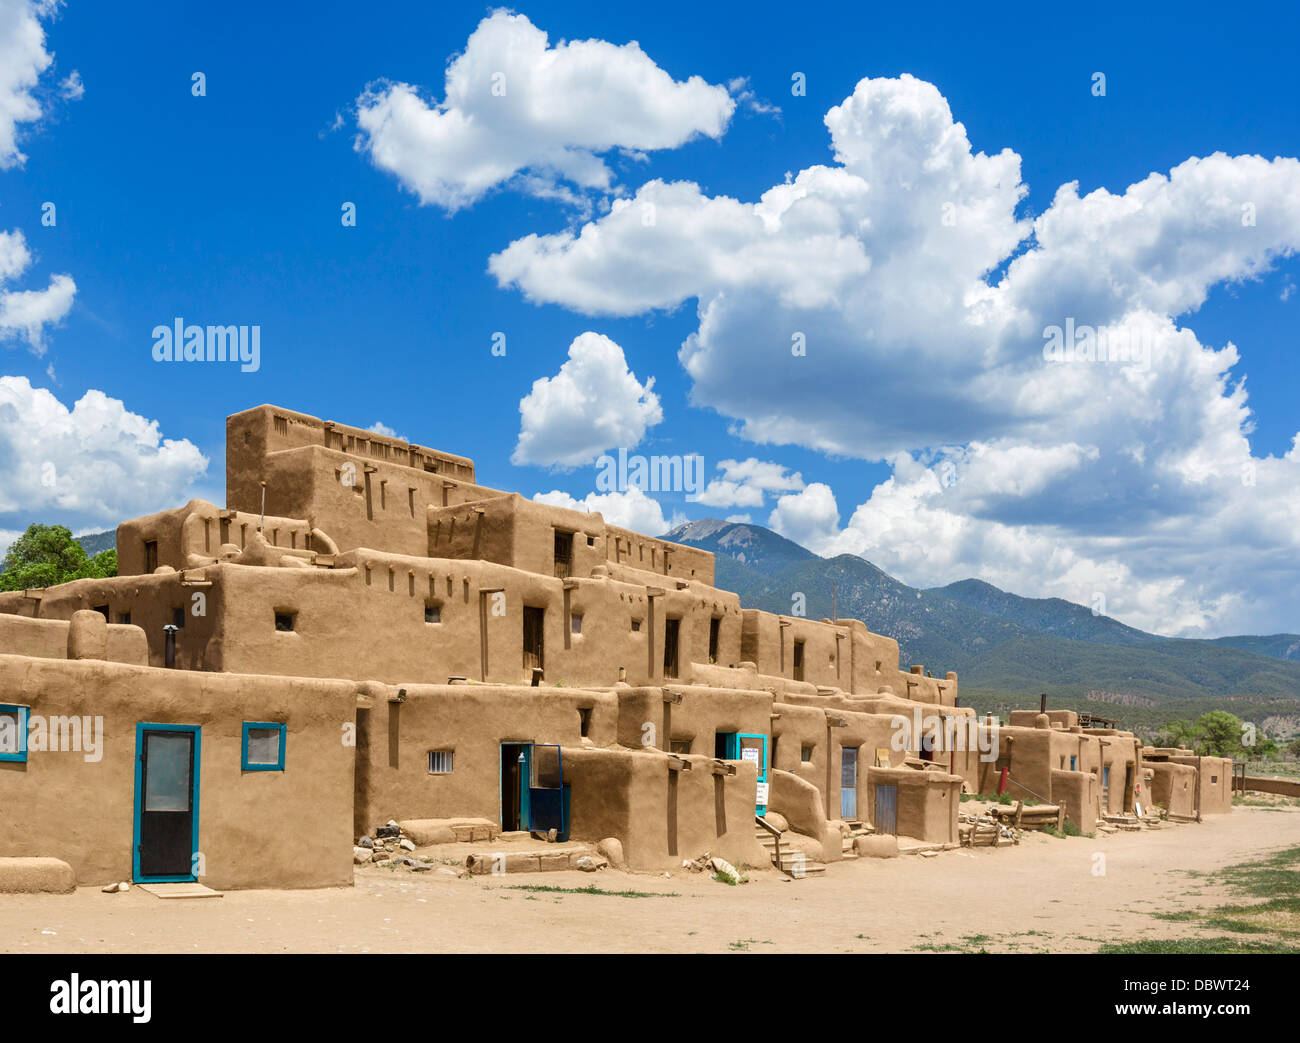 The Hlaauma (North House) native american dwellings in historic Taos Pueblo, Taos, New Mexico, USA - Stock Image